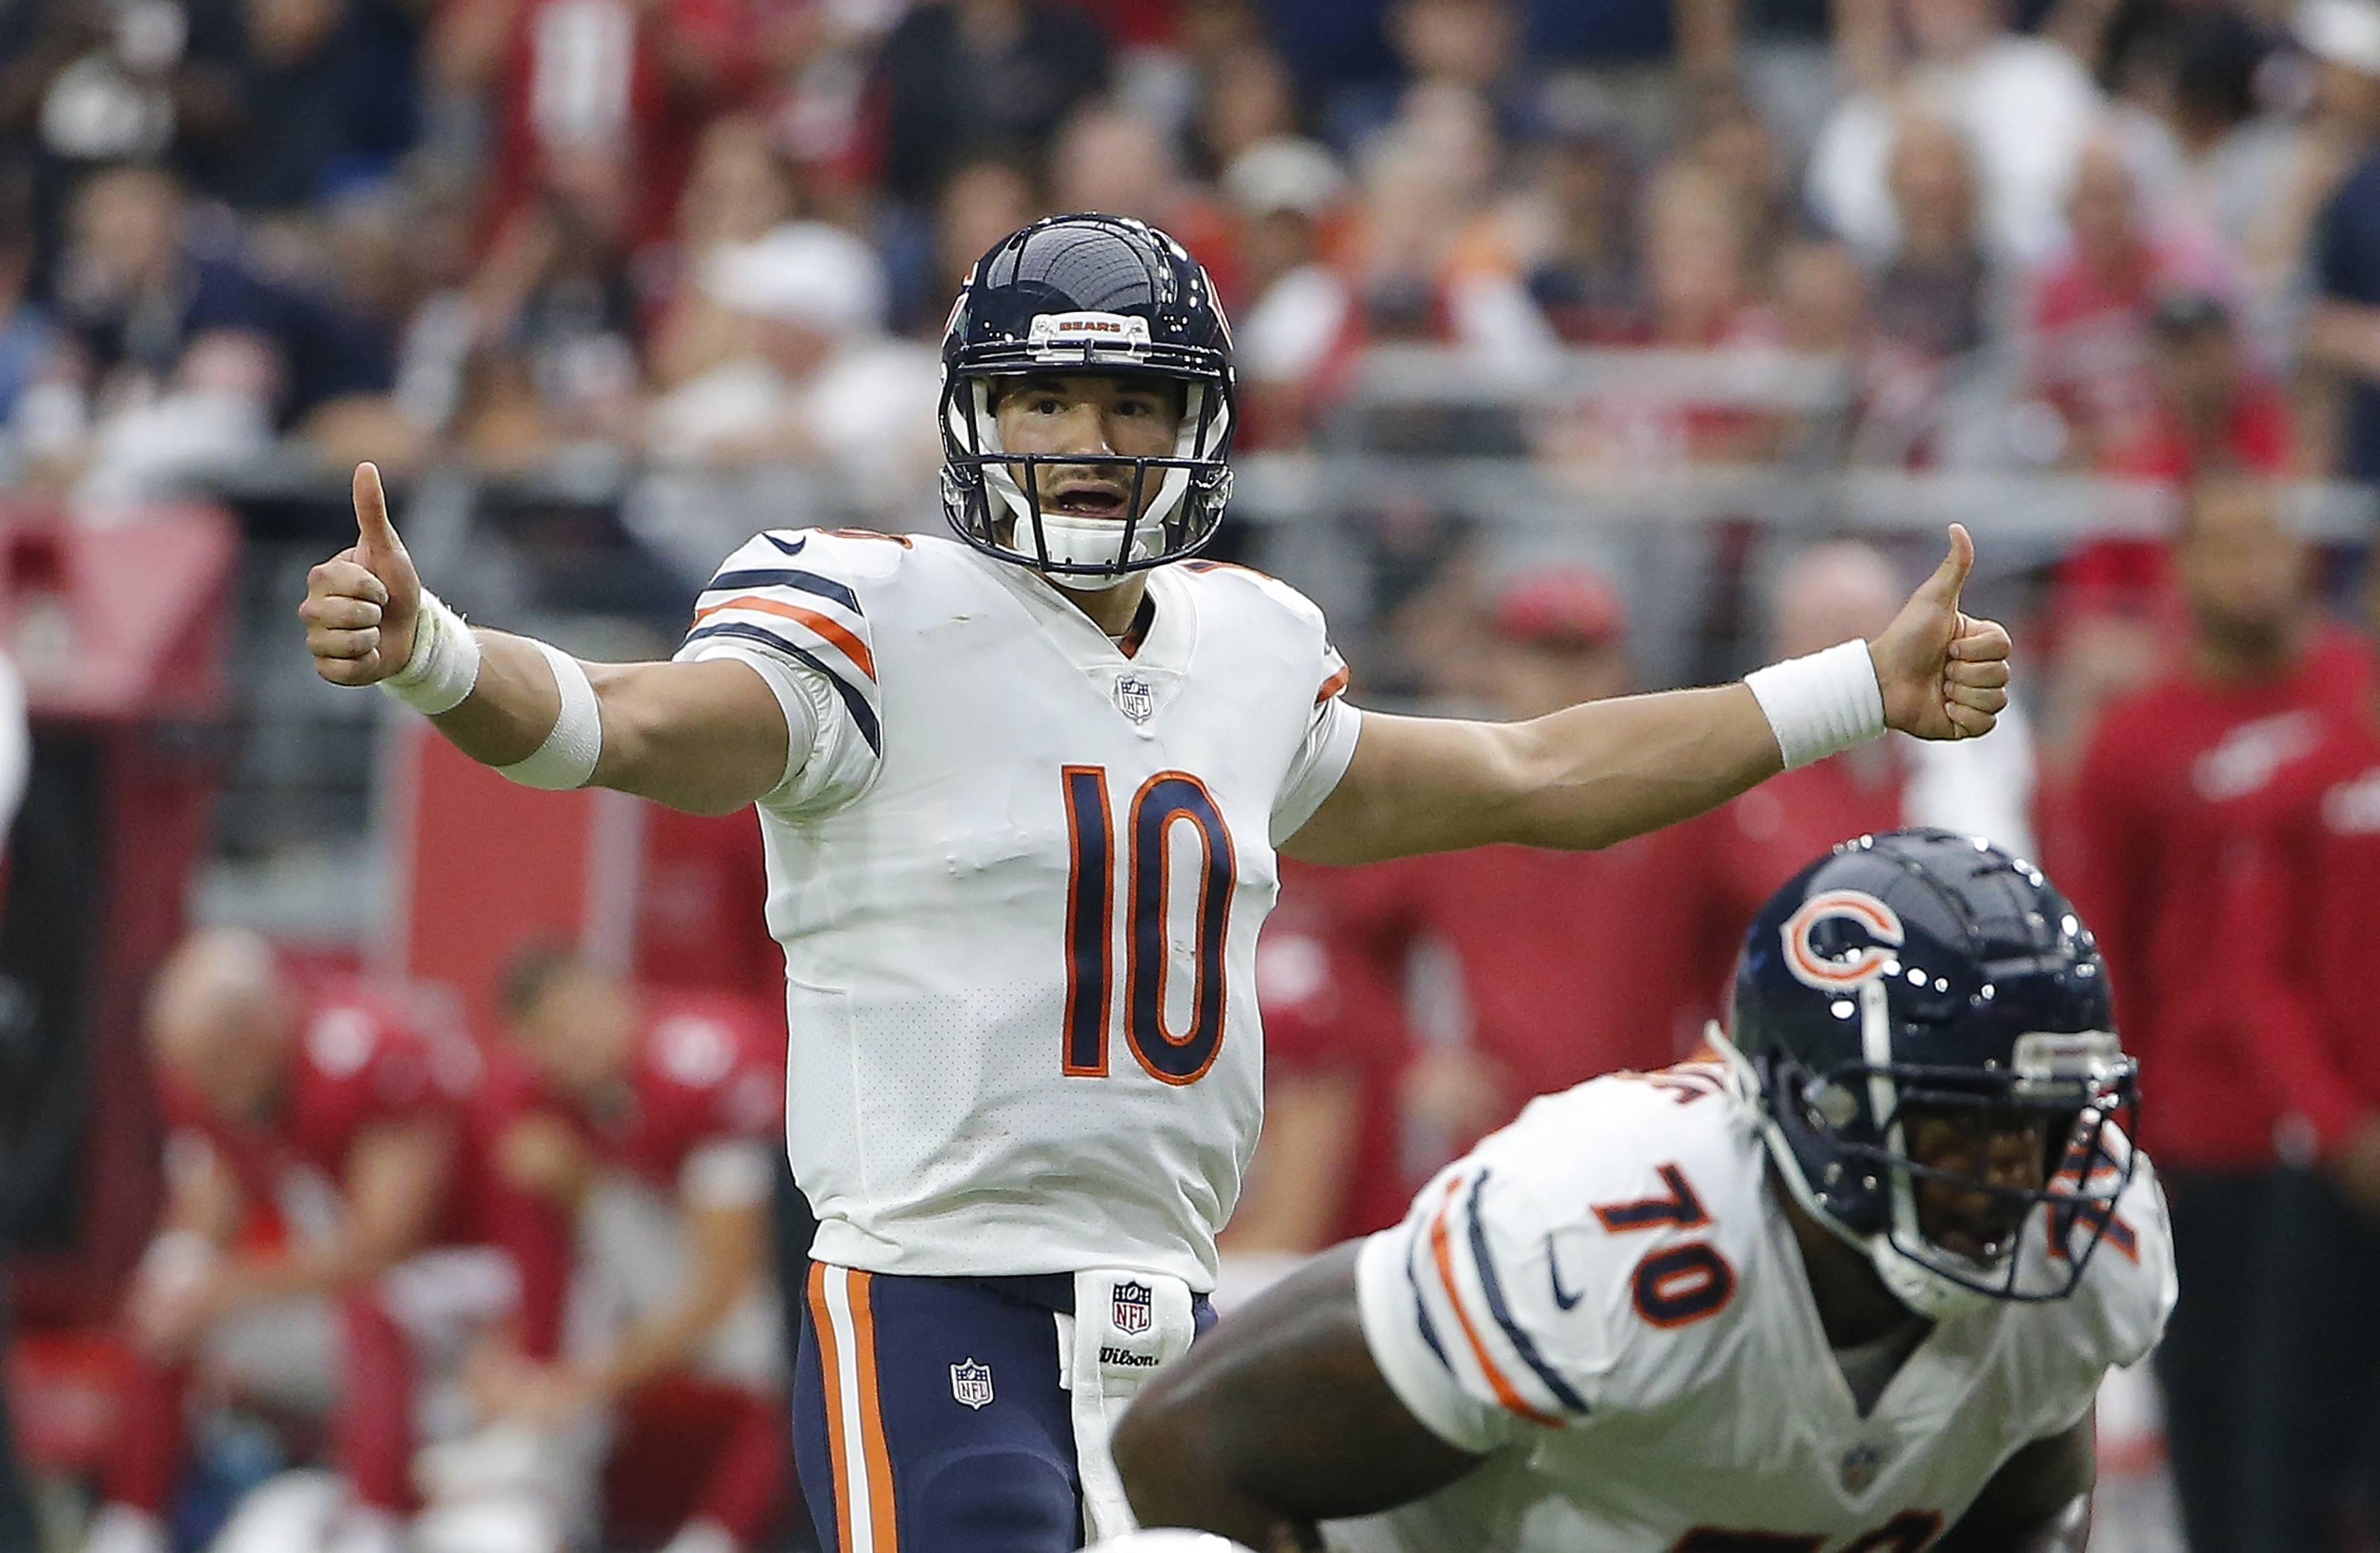 Chicago Bears quarterback Mitchell Trubisky signals during the second half of an NFL football game against the Arizona Cardinals, in Glendale, Ariz. The Bears own sole possession of the NFC North lead for the first time since late in the 2013 season.